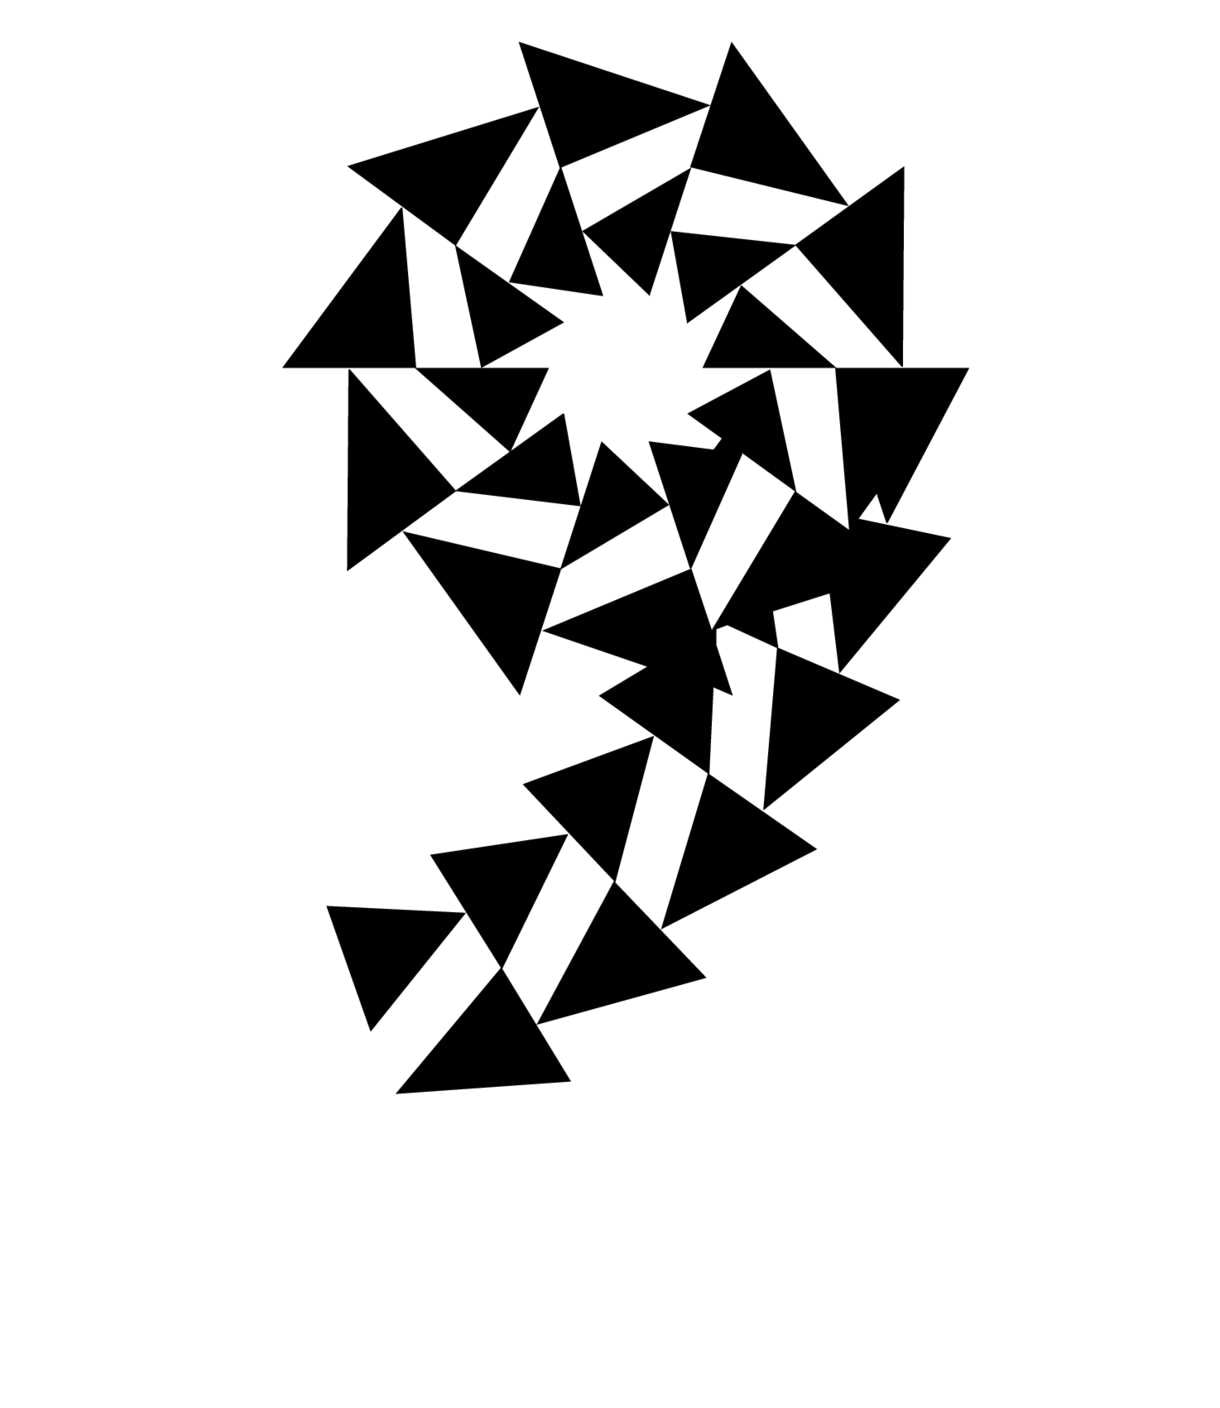 pattern-project-letters-34-1220x1407px